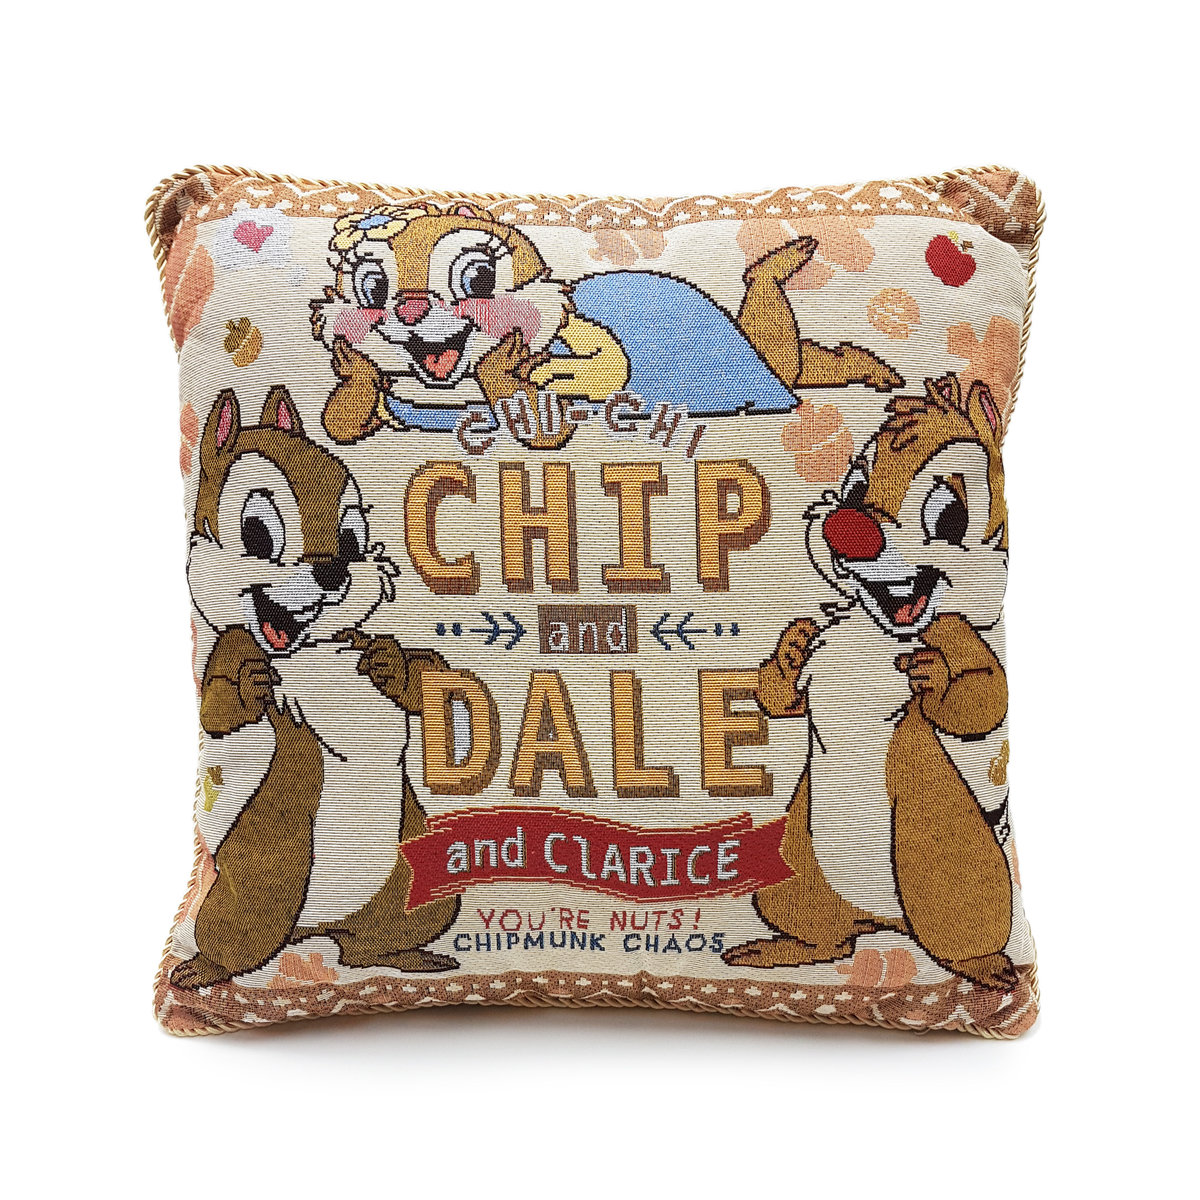 Disney - Chip n Dale Jacquard cushion (Licensed by Disney)